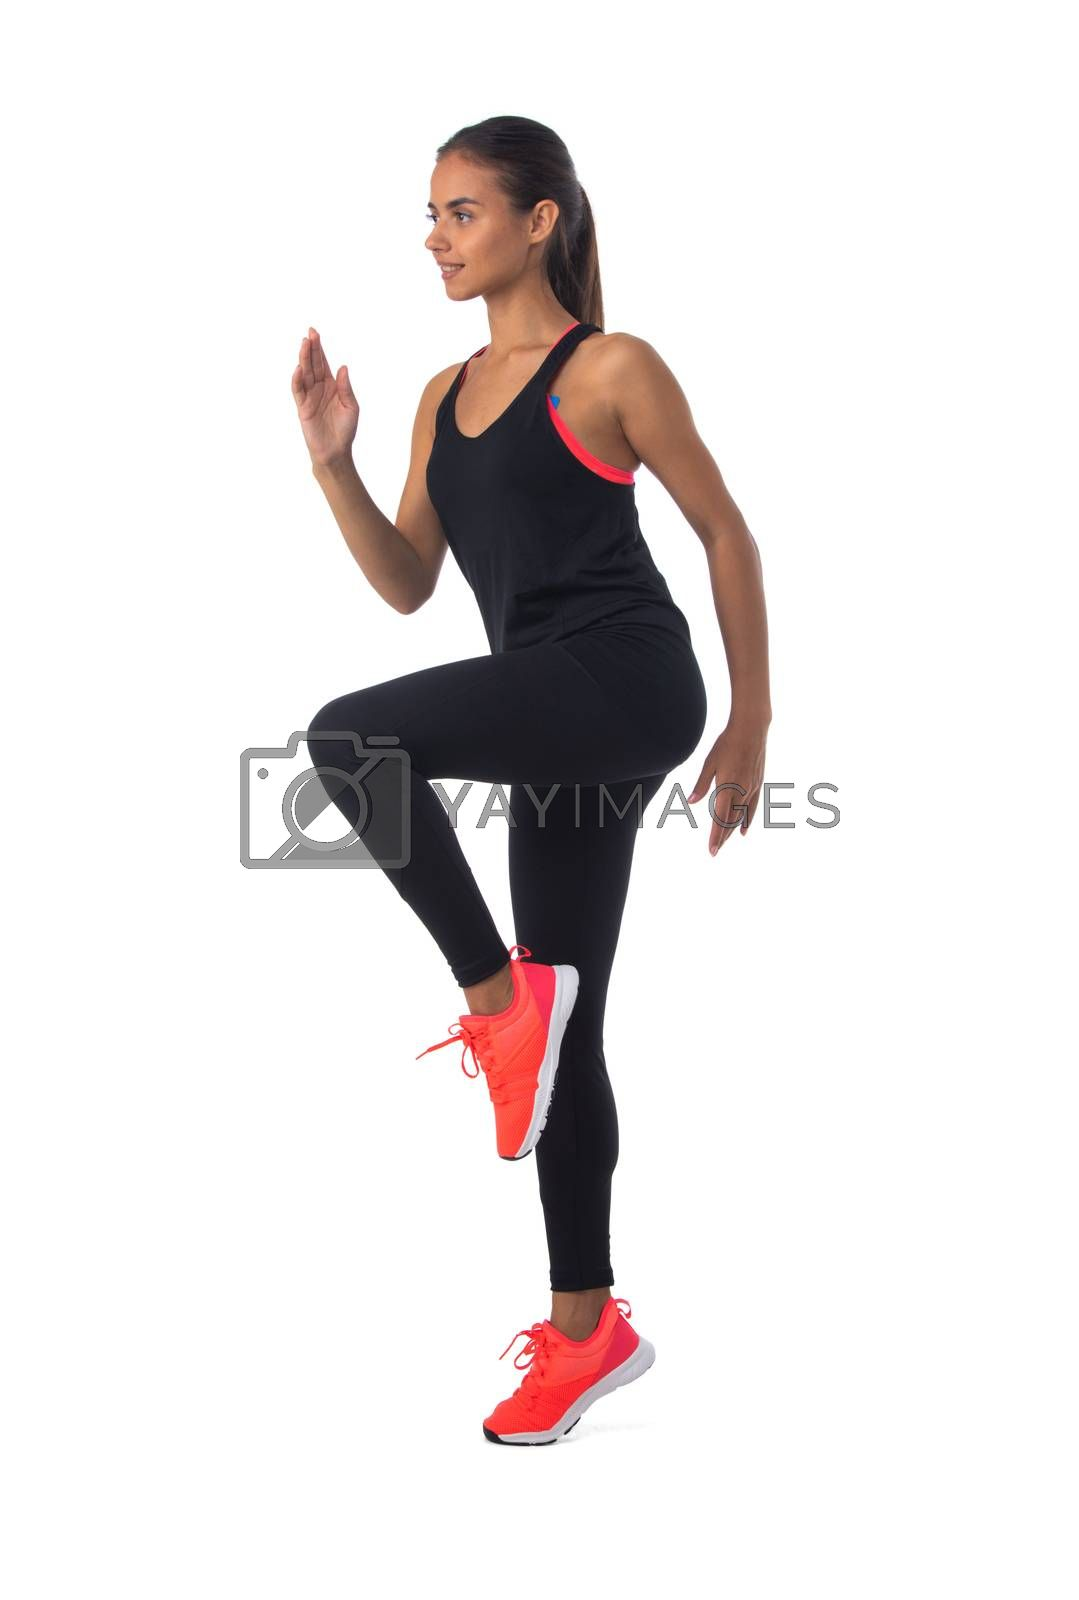 Royalty free image of Fitness girl doing workout by ALotOfPeople